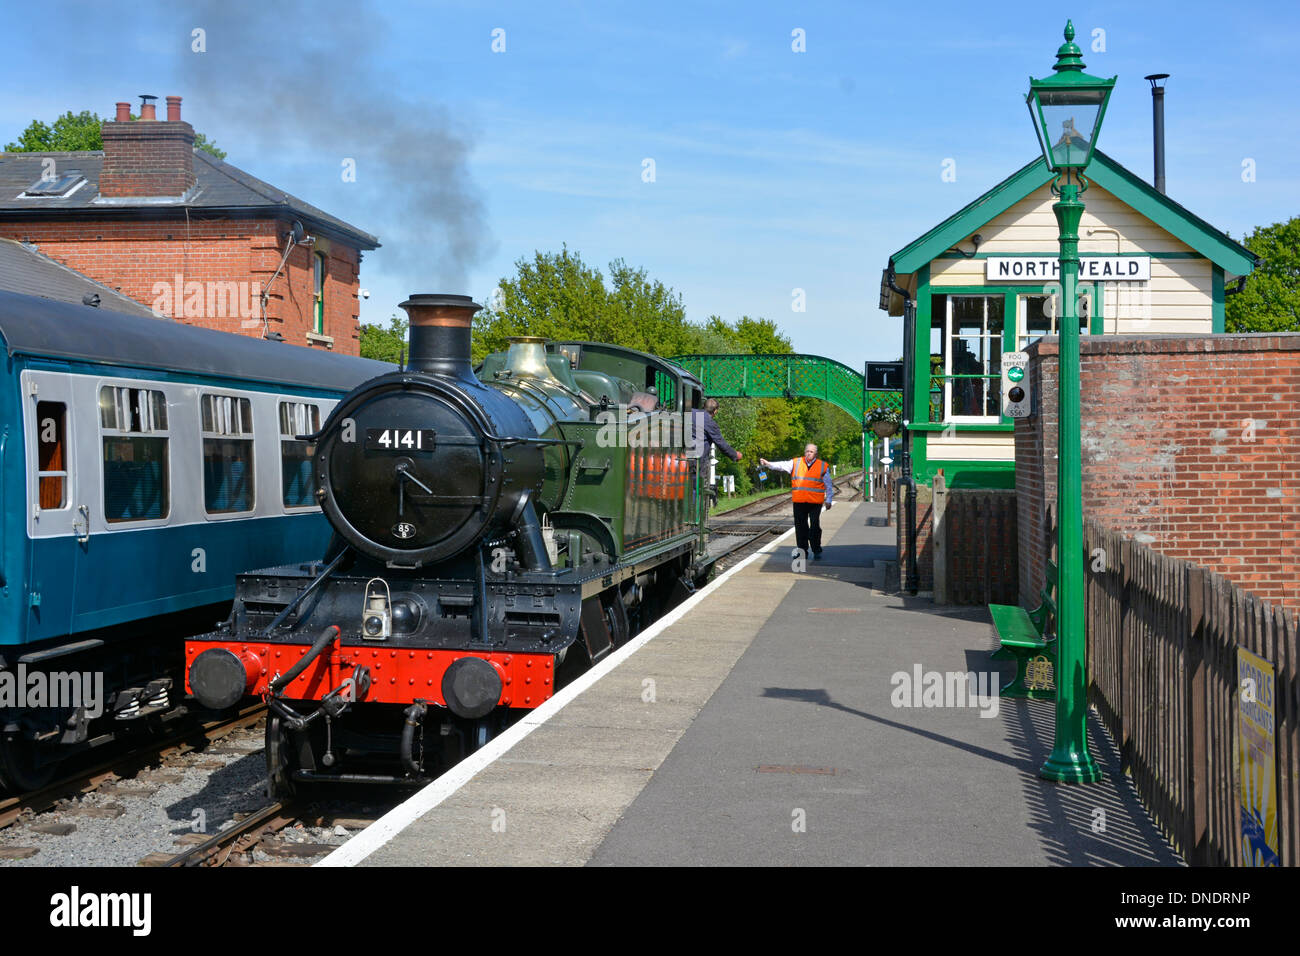 Signalman handing token to engine driver for single track working at North Weald signal box on the Epping Ongar heritage railway - Stock Image